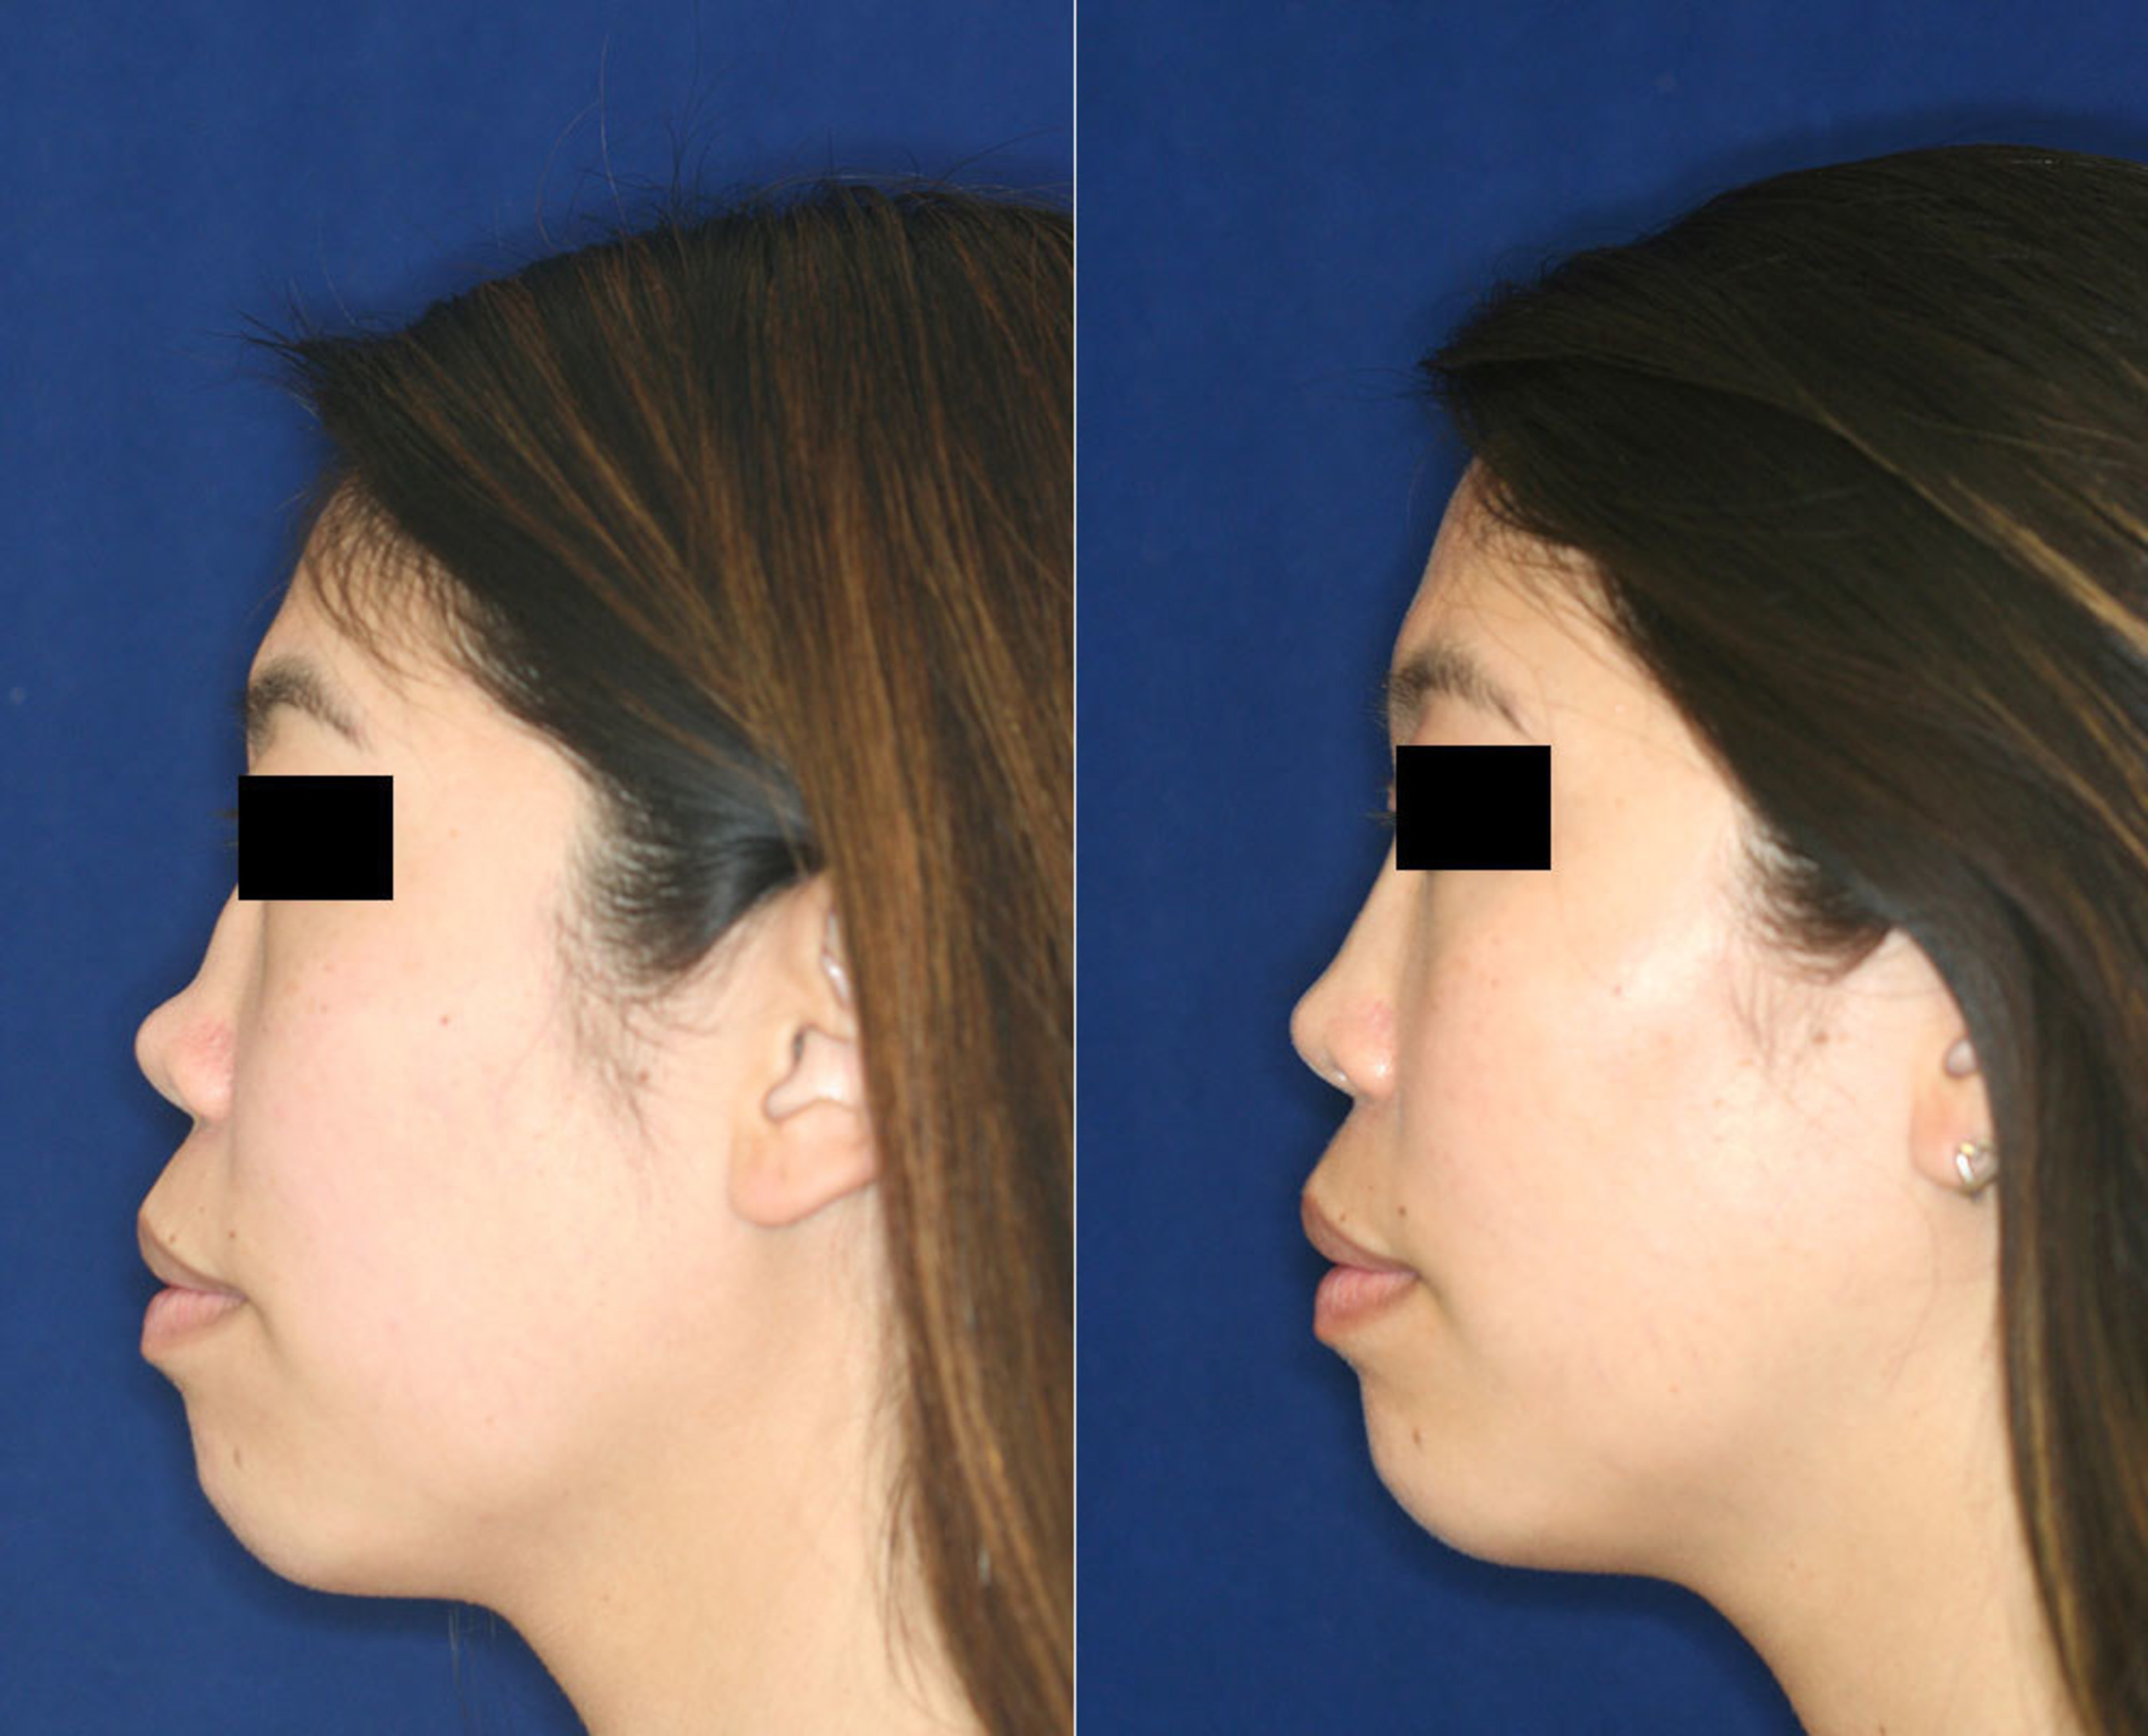 Permanent, Non-Surgical Nose Job: The Little Known, No-Knife Procedure